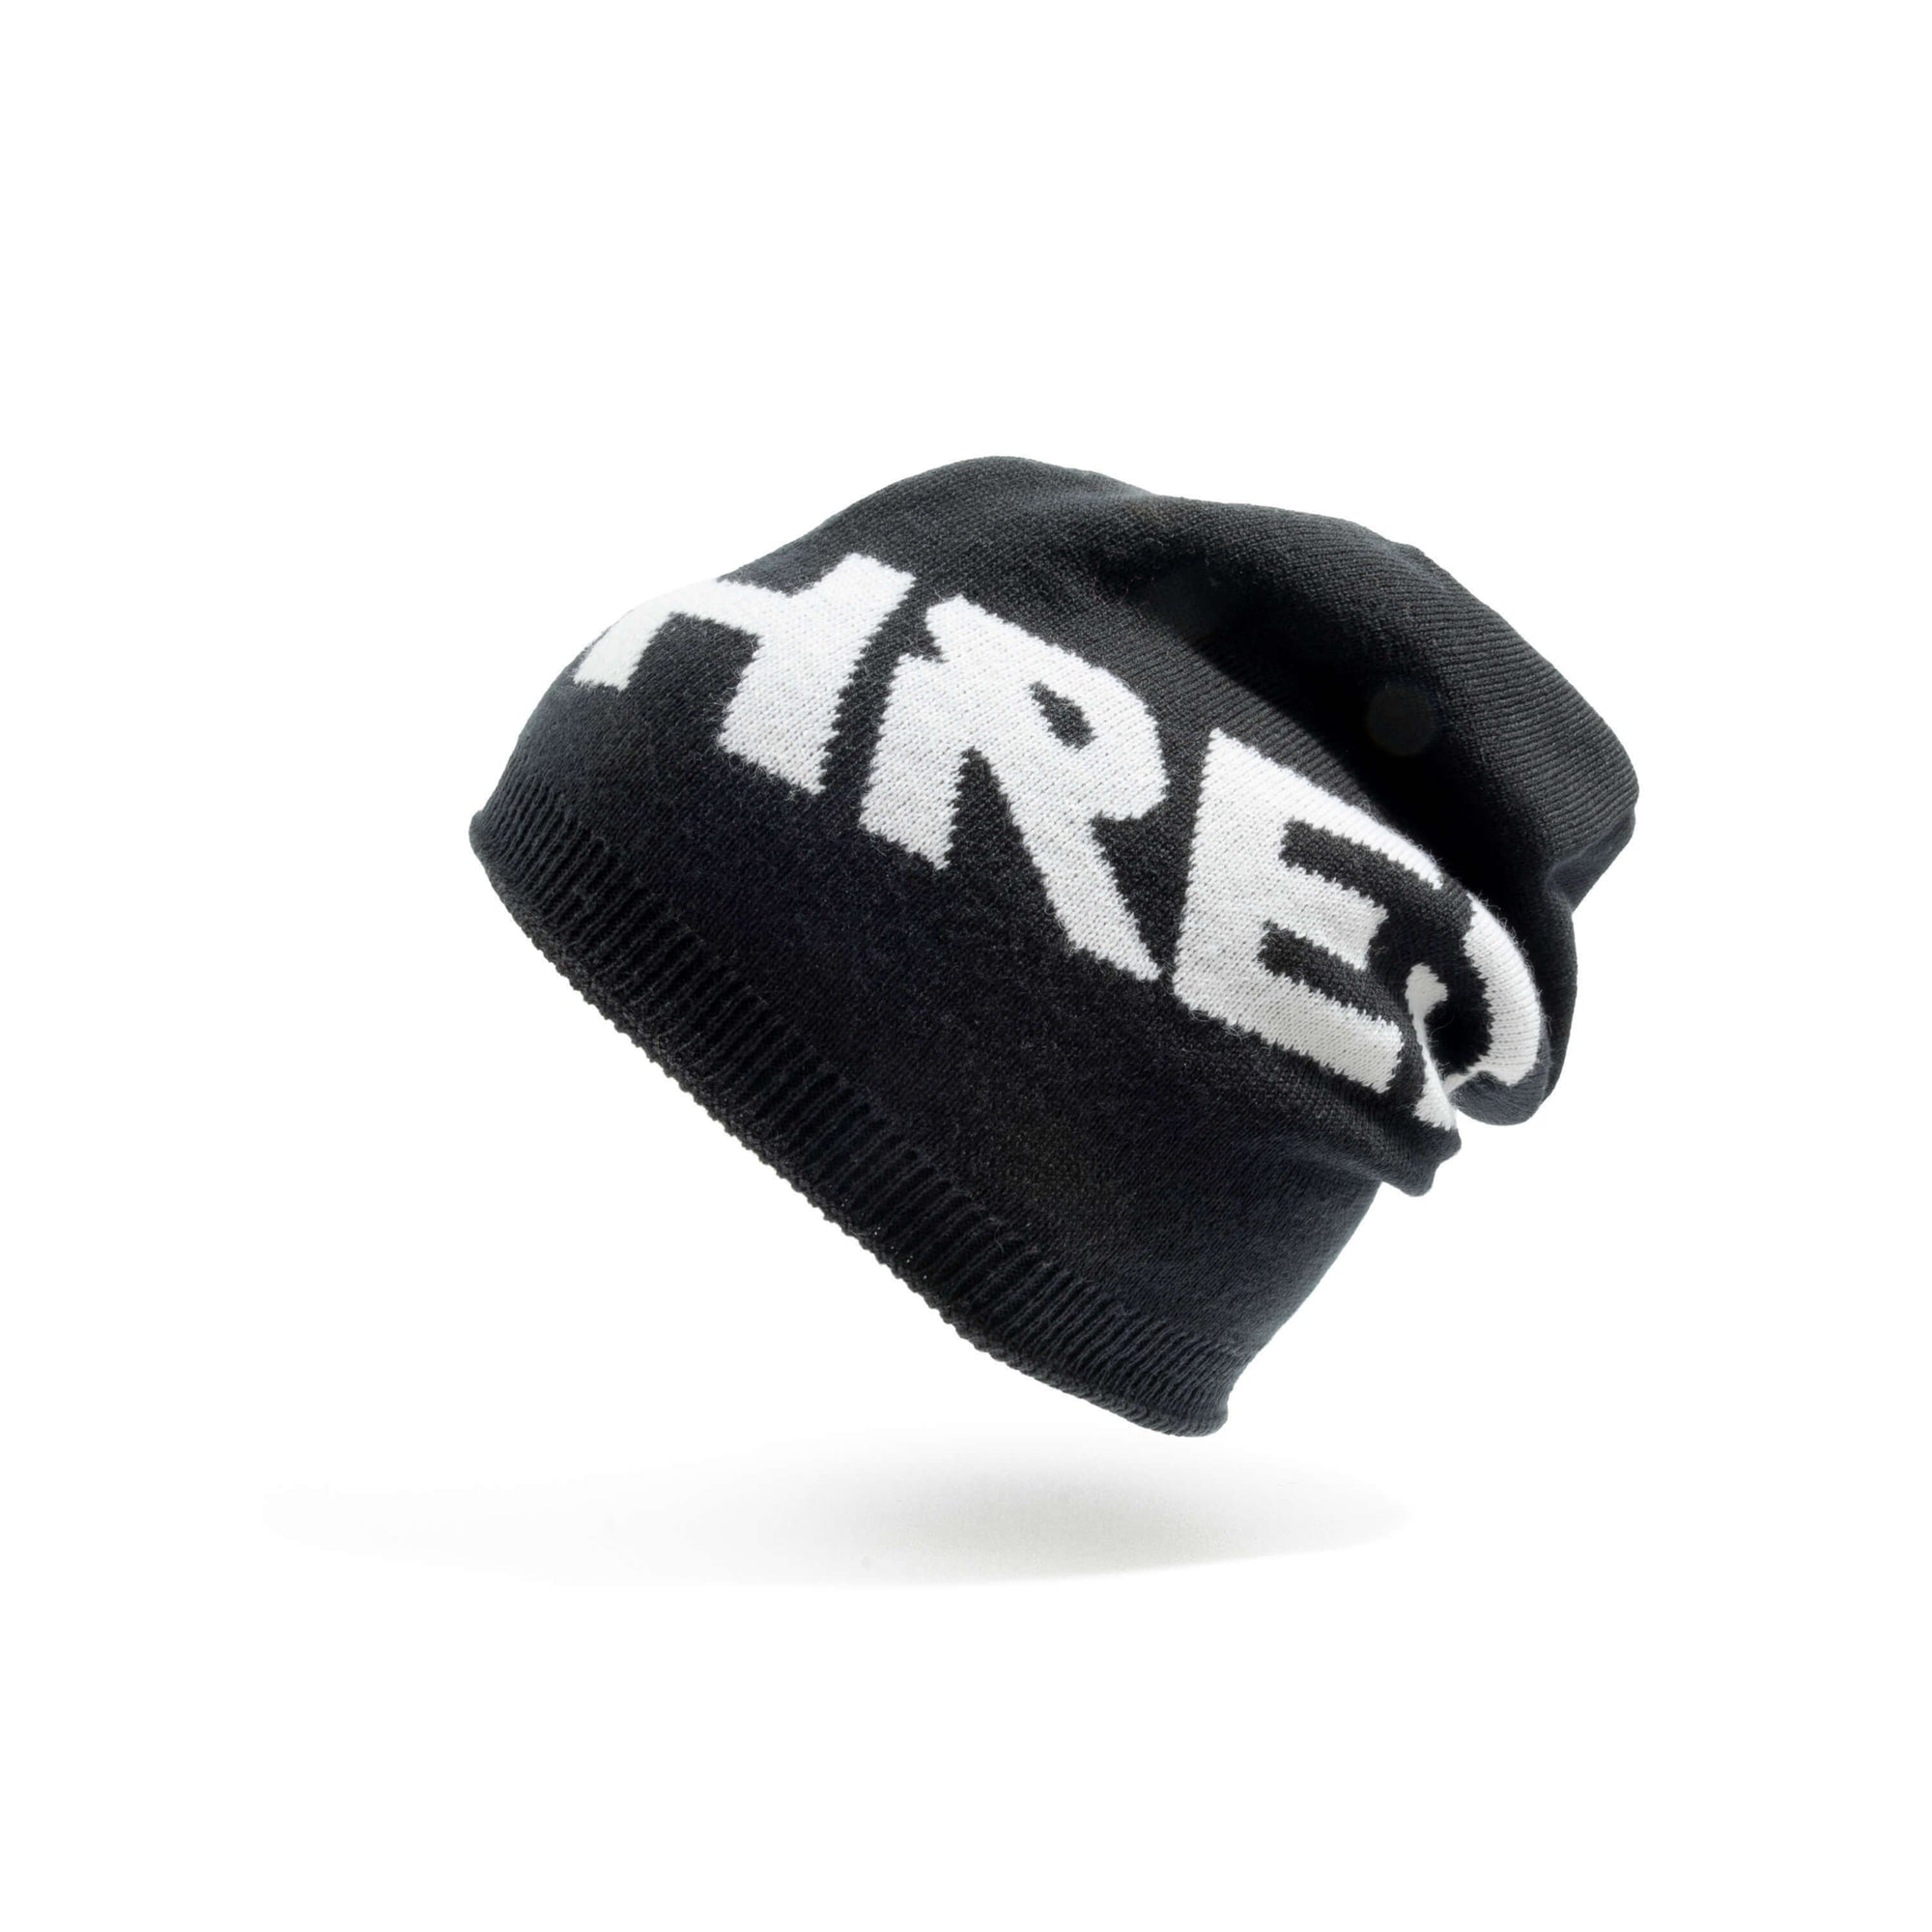 Empire Beanie Black/White - Hats